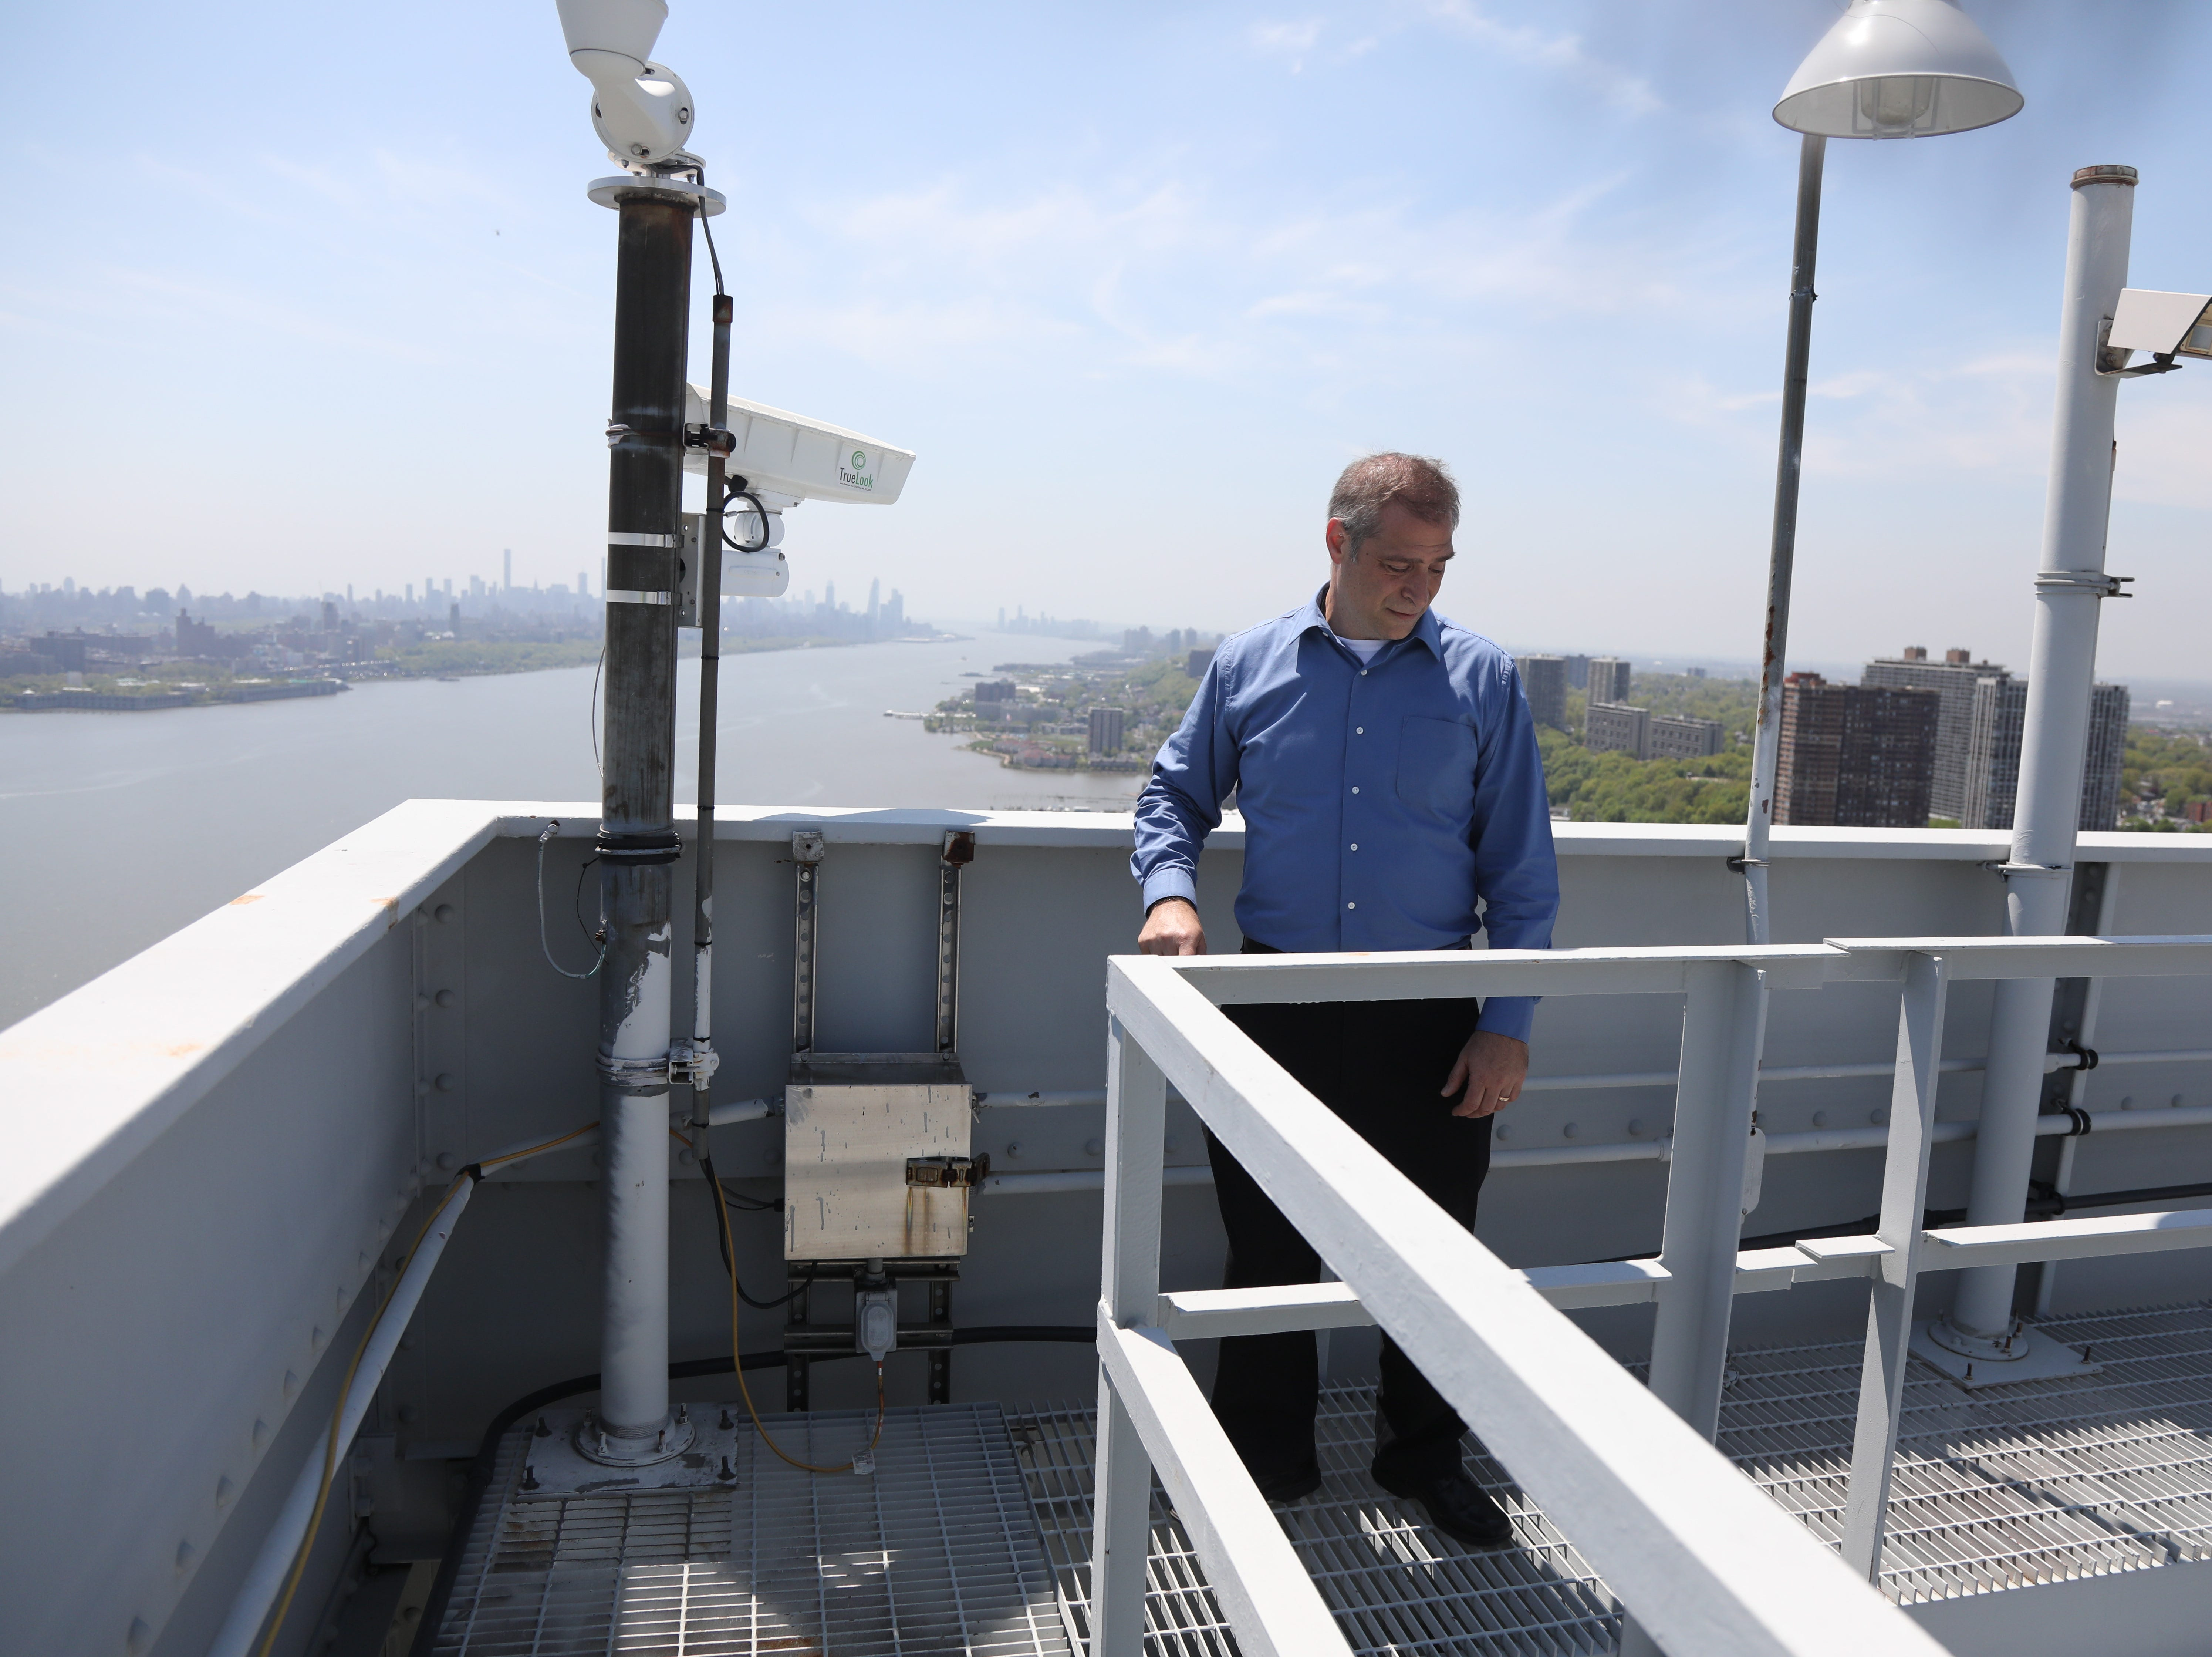 Ken Sagrestano, general manager of the George Washington Bridge of the GWB on top of the west tower of the bridge.